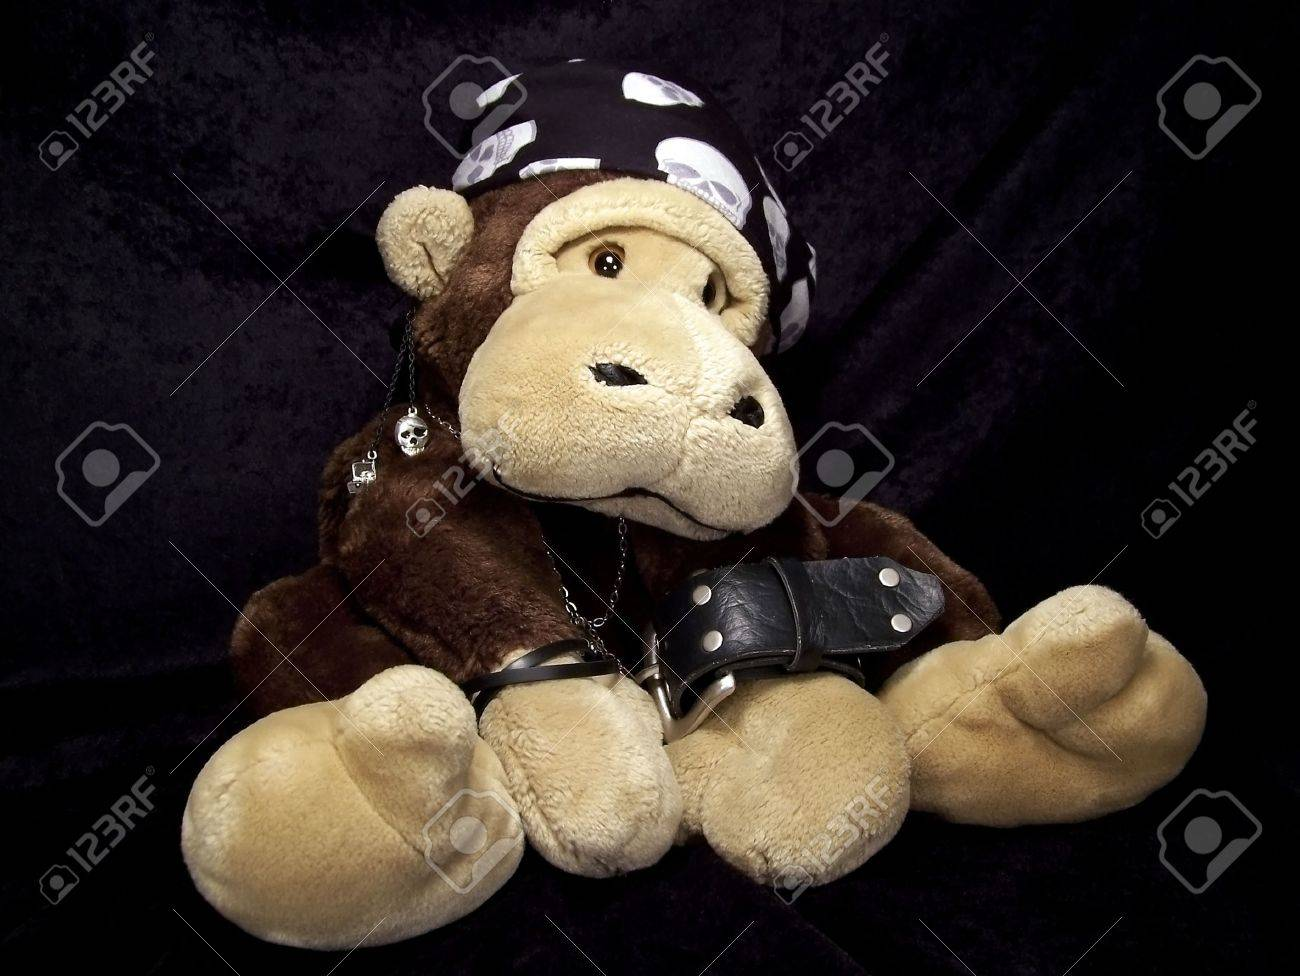 Portrait of a stuffed monkey dressed up as a tough guy with a skull bandana, black leather bracelets, a chain, and an earring. Stock Photo - 2115657